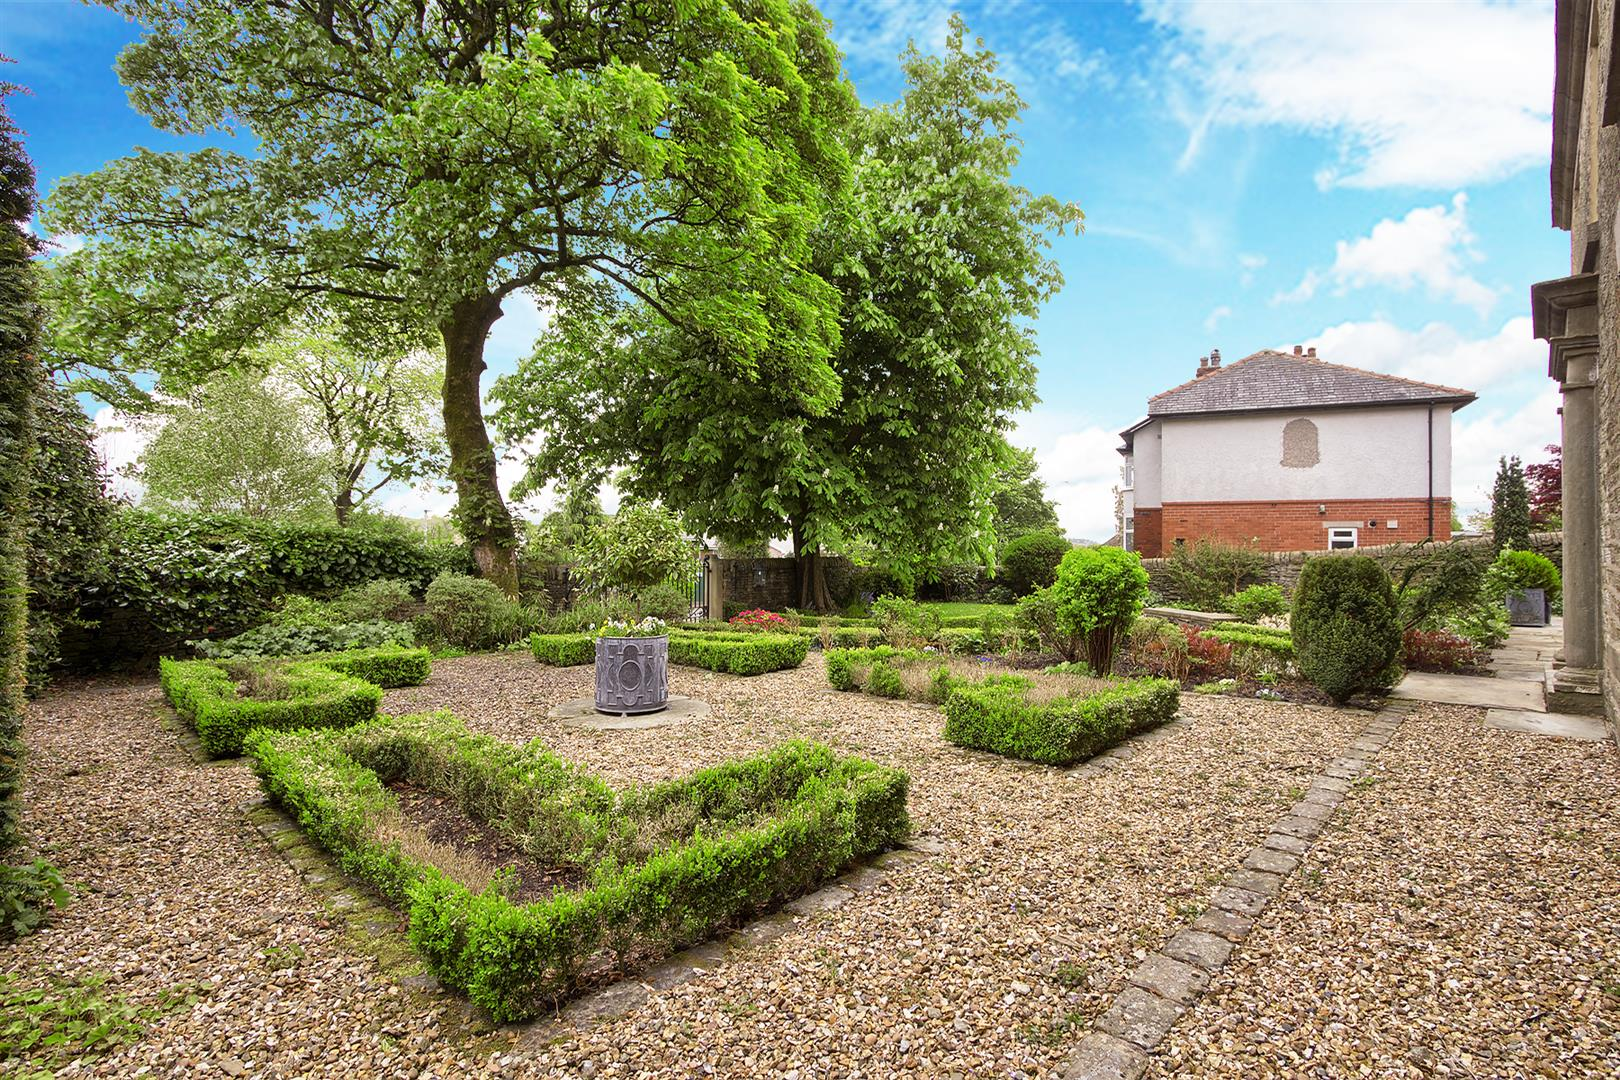 5 bedroom detached house For Sale in Bolton - front garden 2.png.